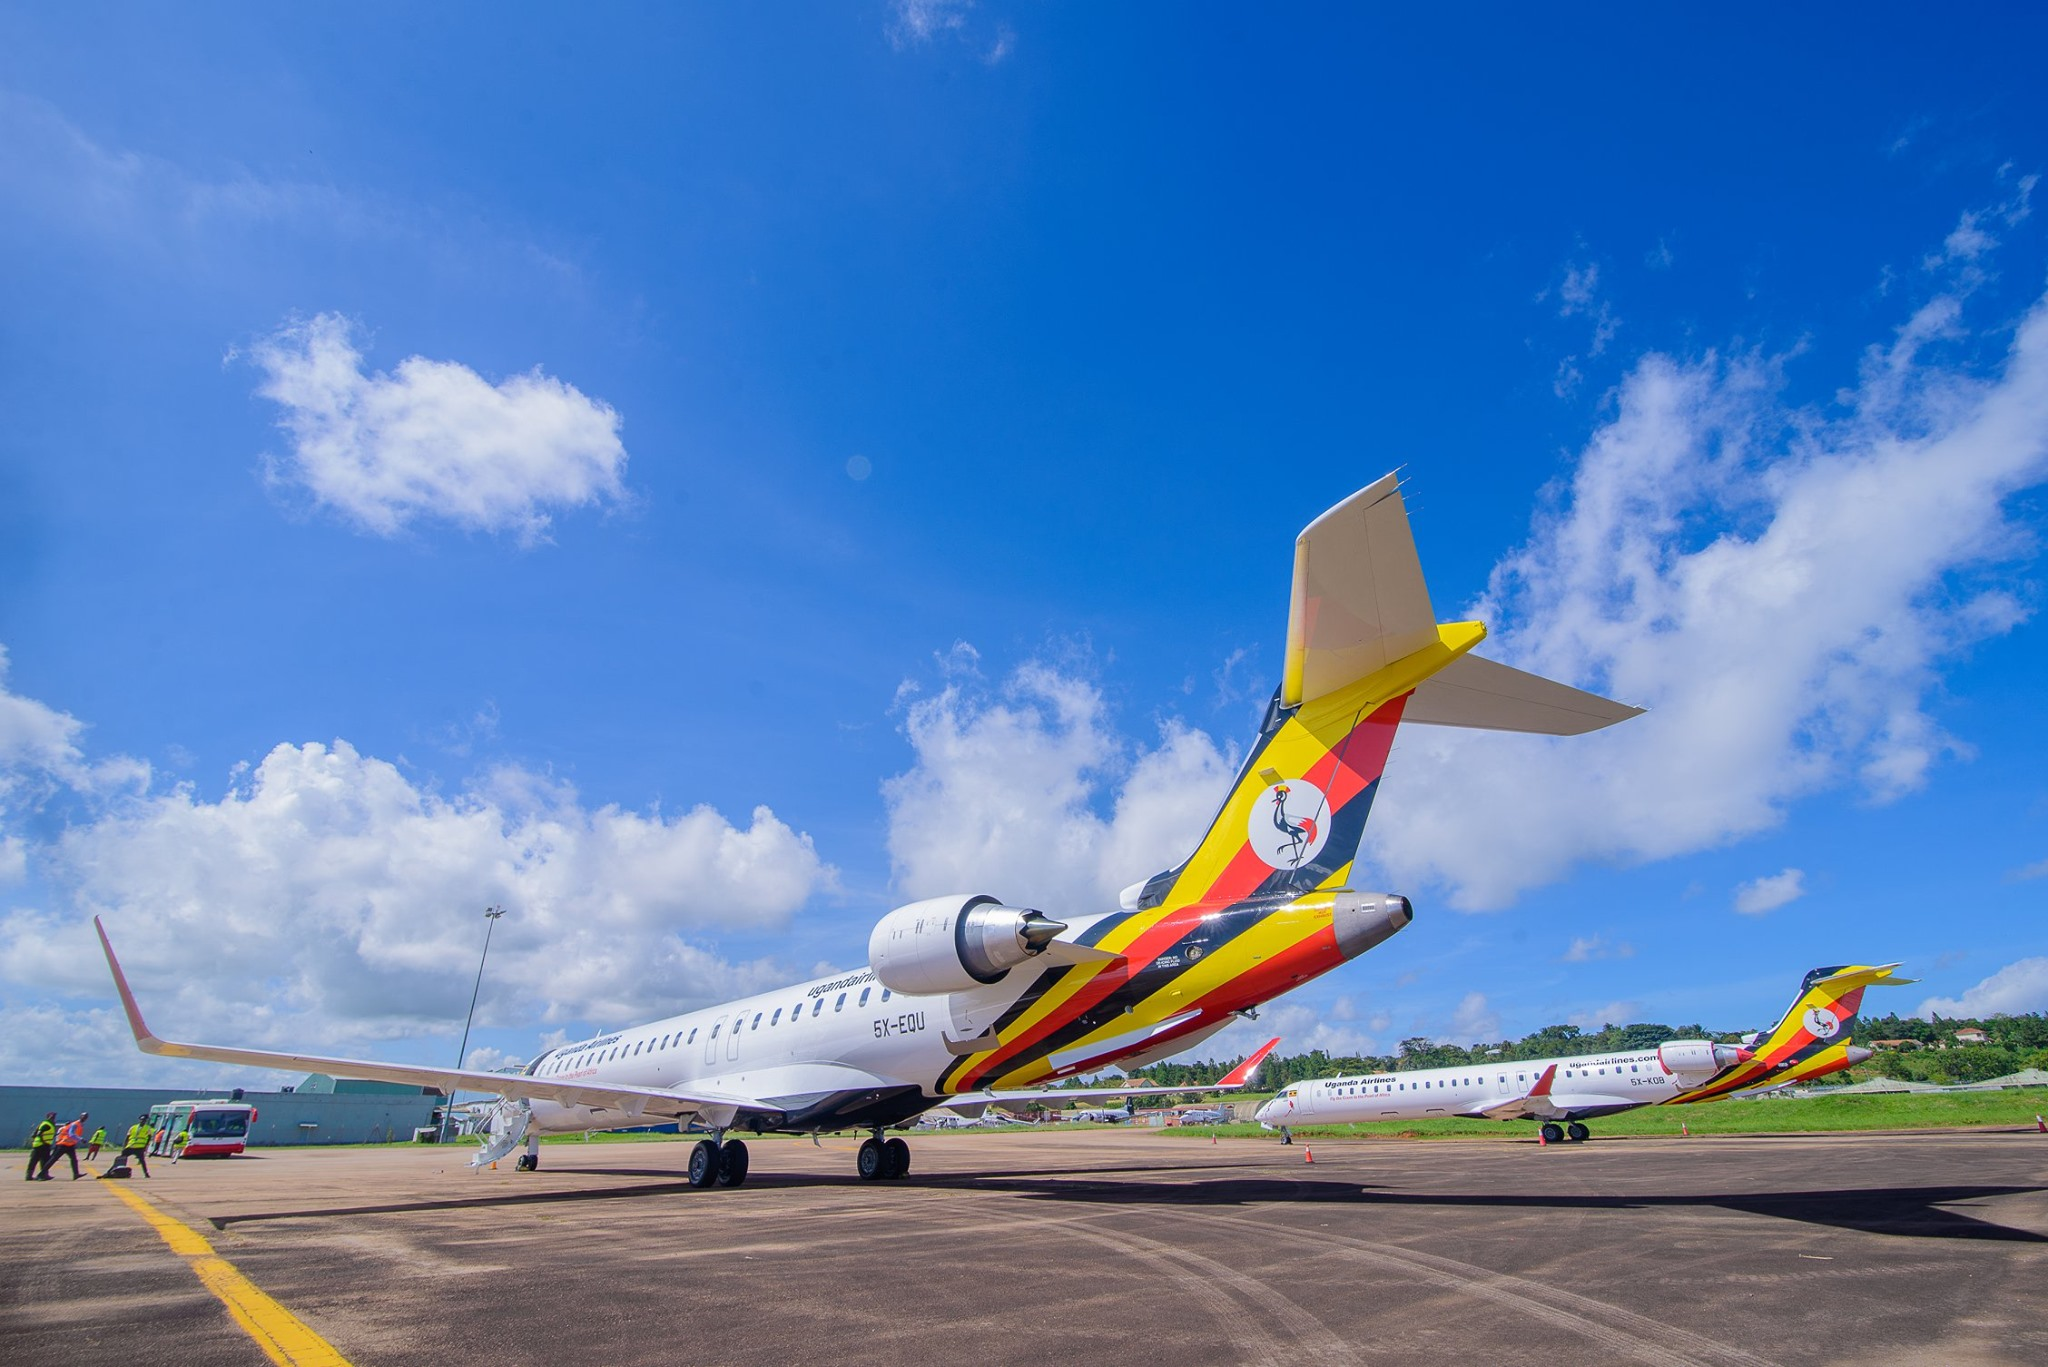 Uganda Airlines to launch maiden flights on August 28